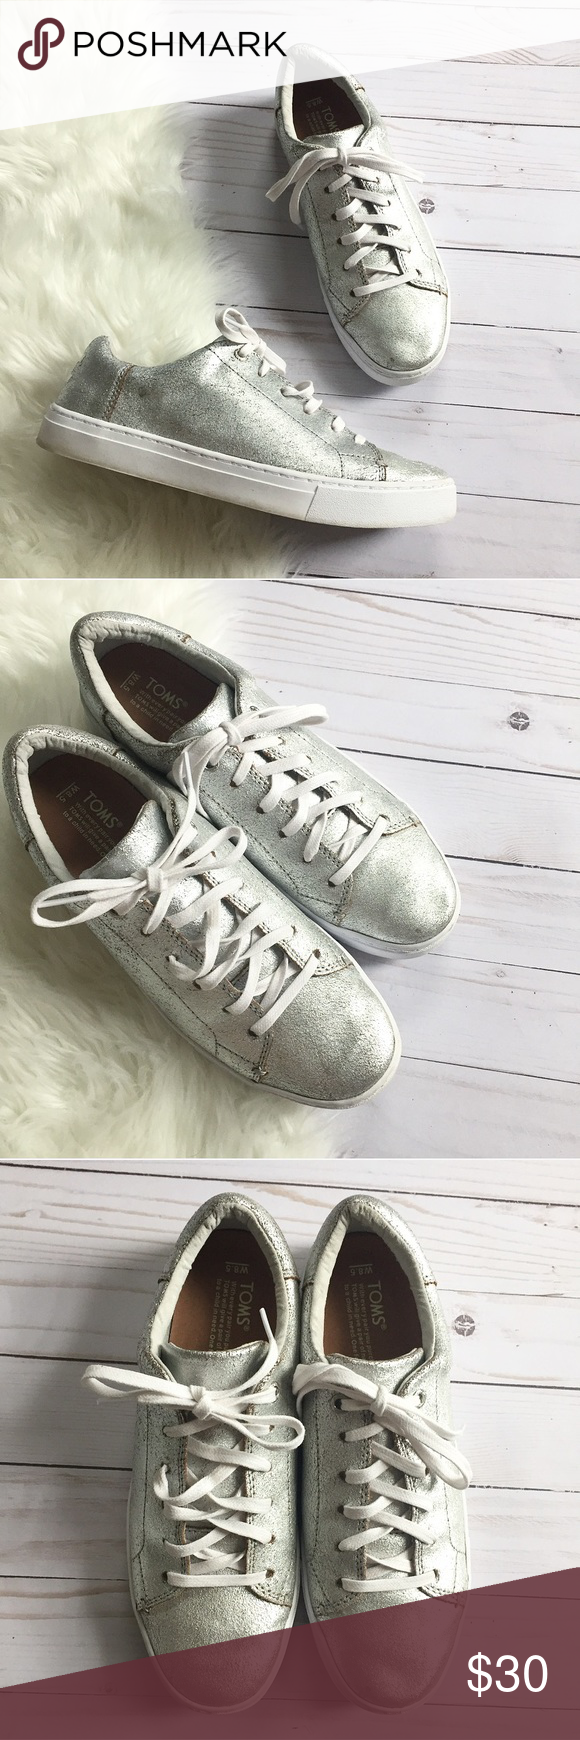 fda277daca1 Tom s Lenox Silver Sneakers - Metallic Cute Tom s Lenox style sneakers. Metallic  silver. Size 8.5. They have a distressed look to them—they were made like  ...